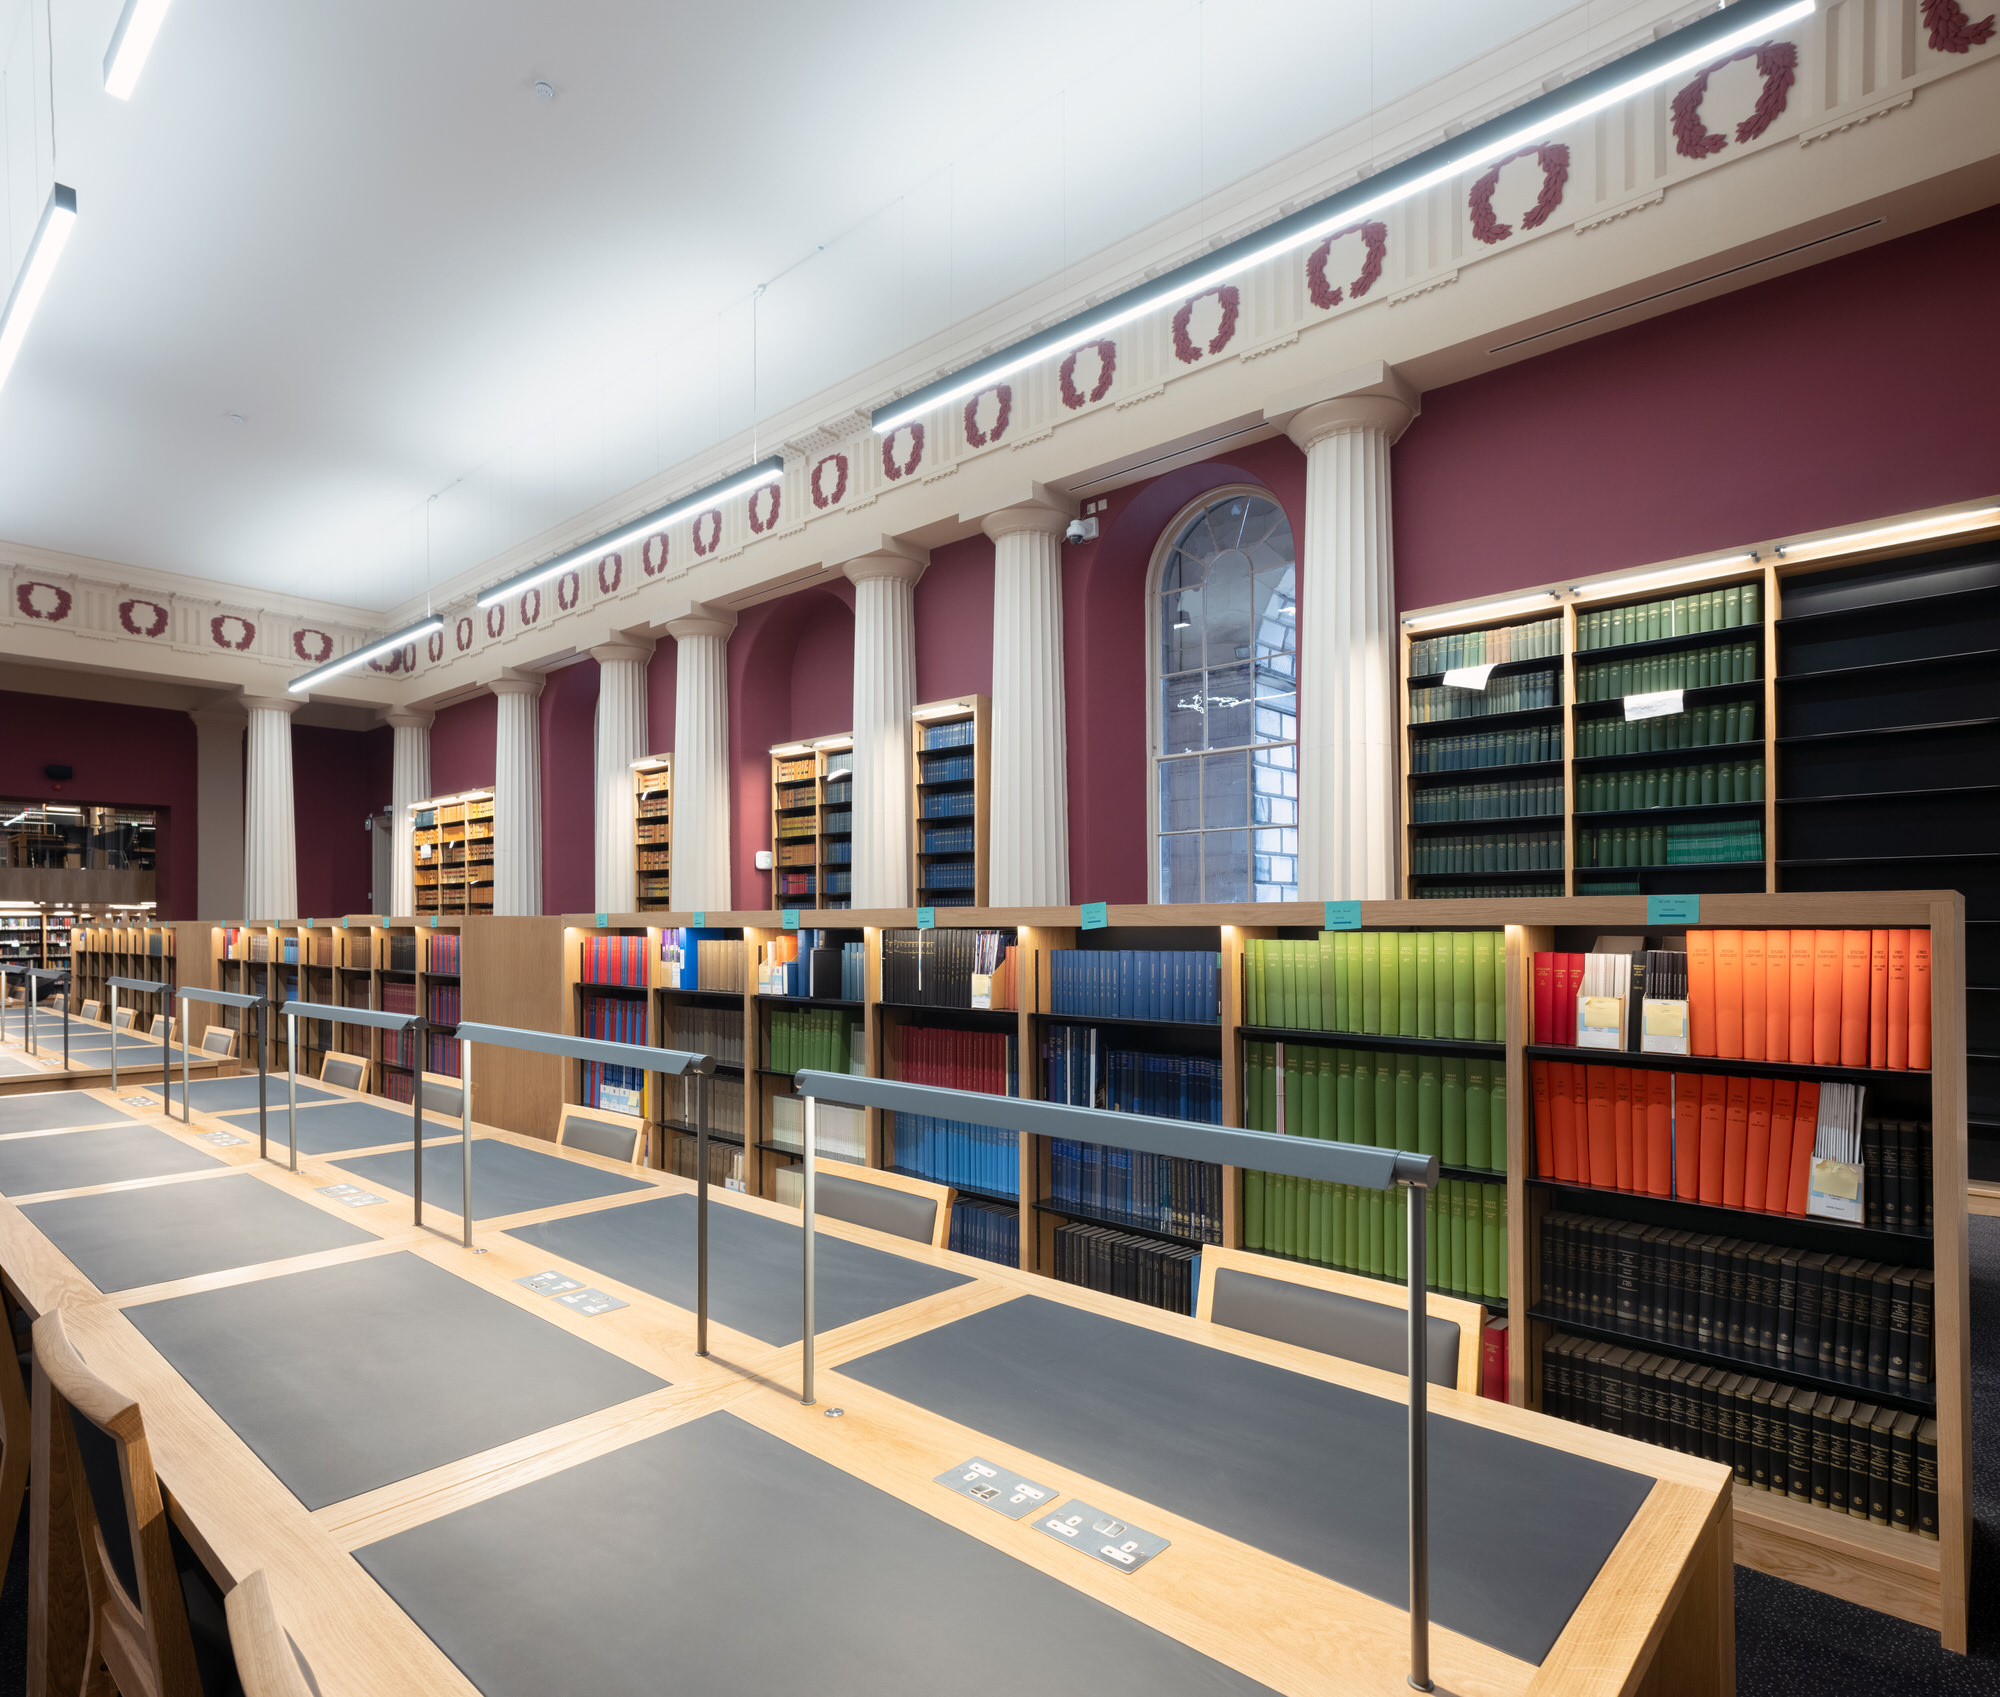 Edinburgh Law School library | Image by McAteer Photo